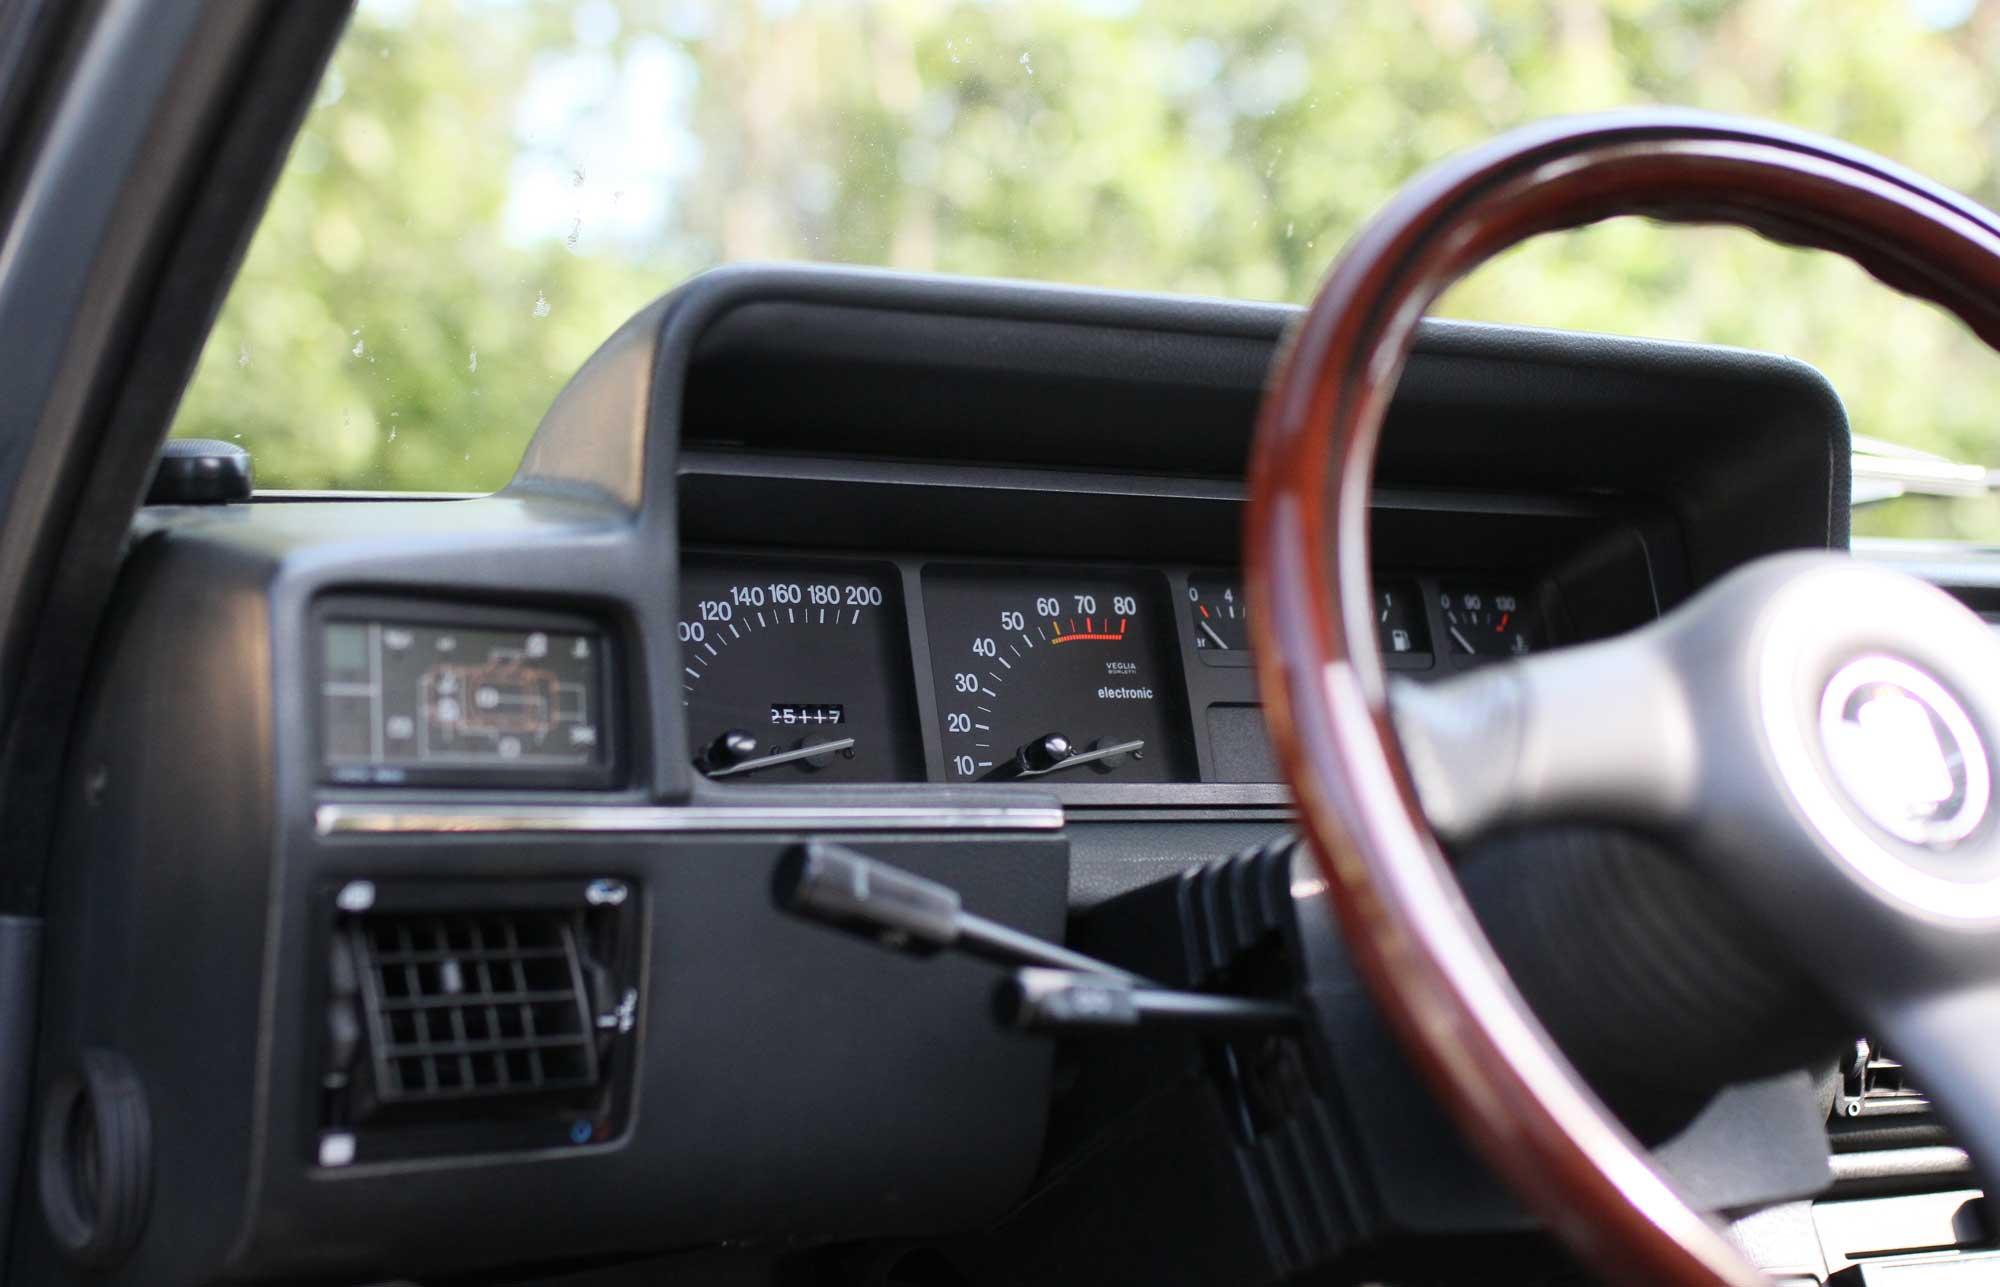 Steering Wheel Nardi in a fiat